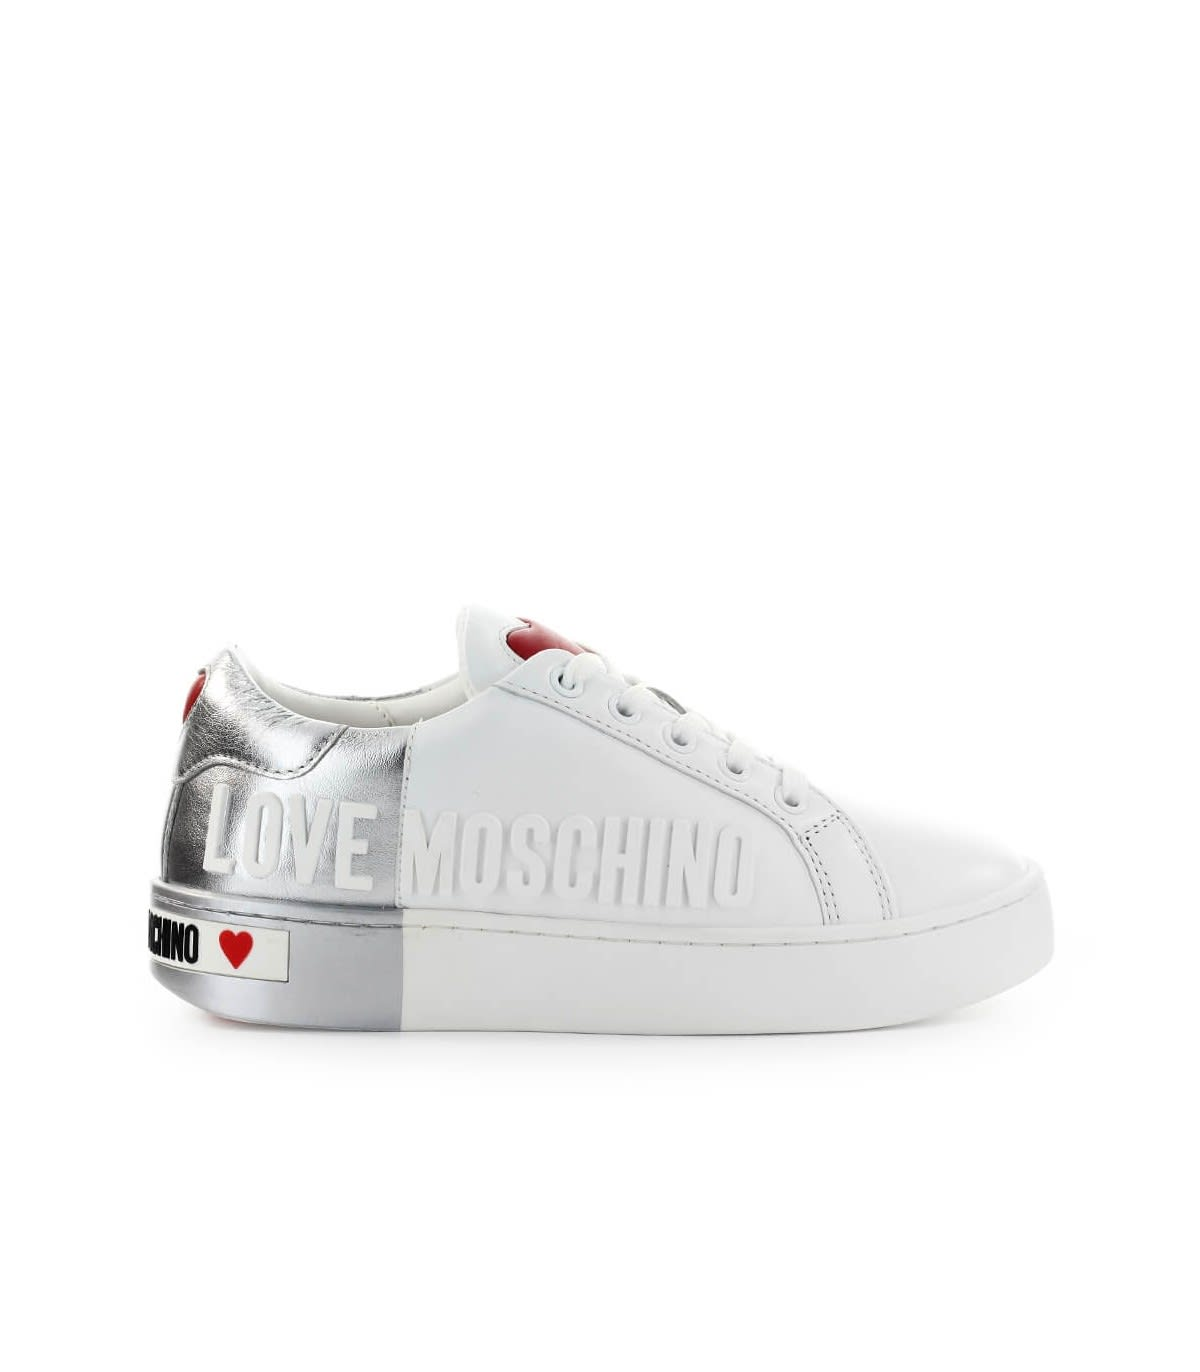 Love Moschino WHITE SILVER SNEAKER WITH LOGO